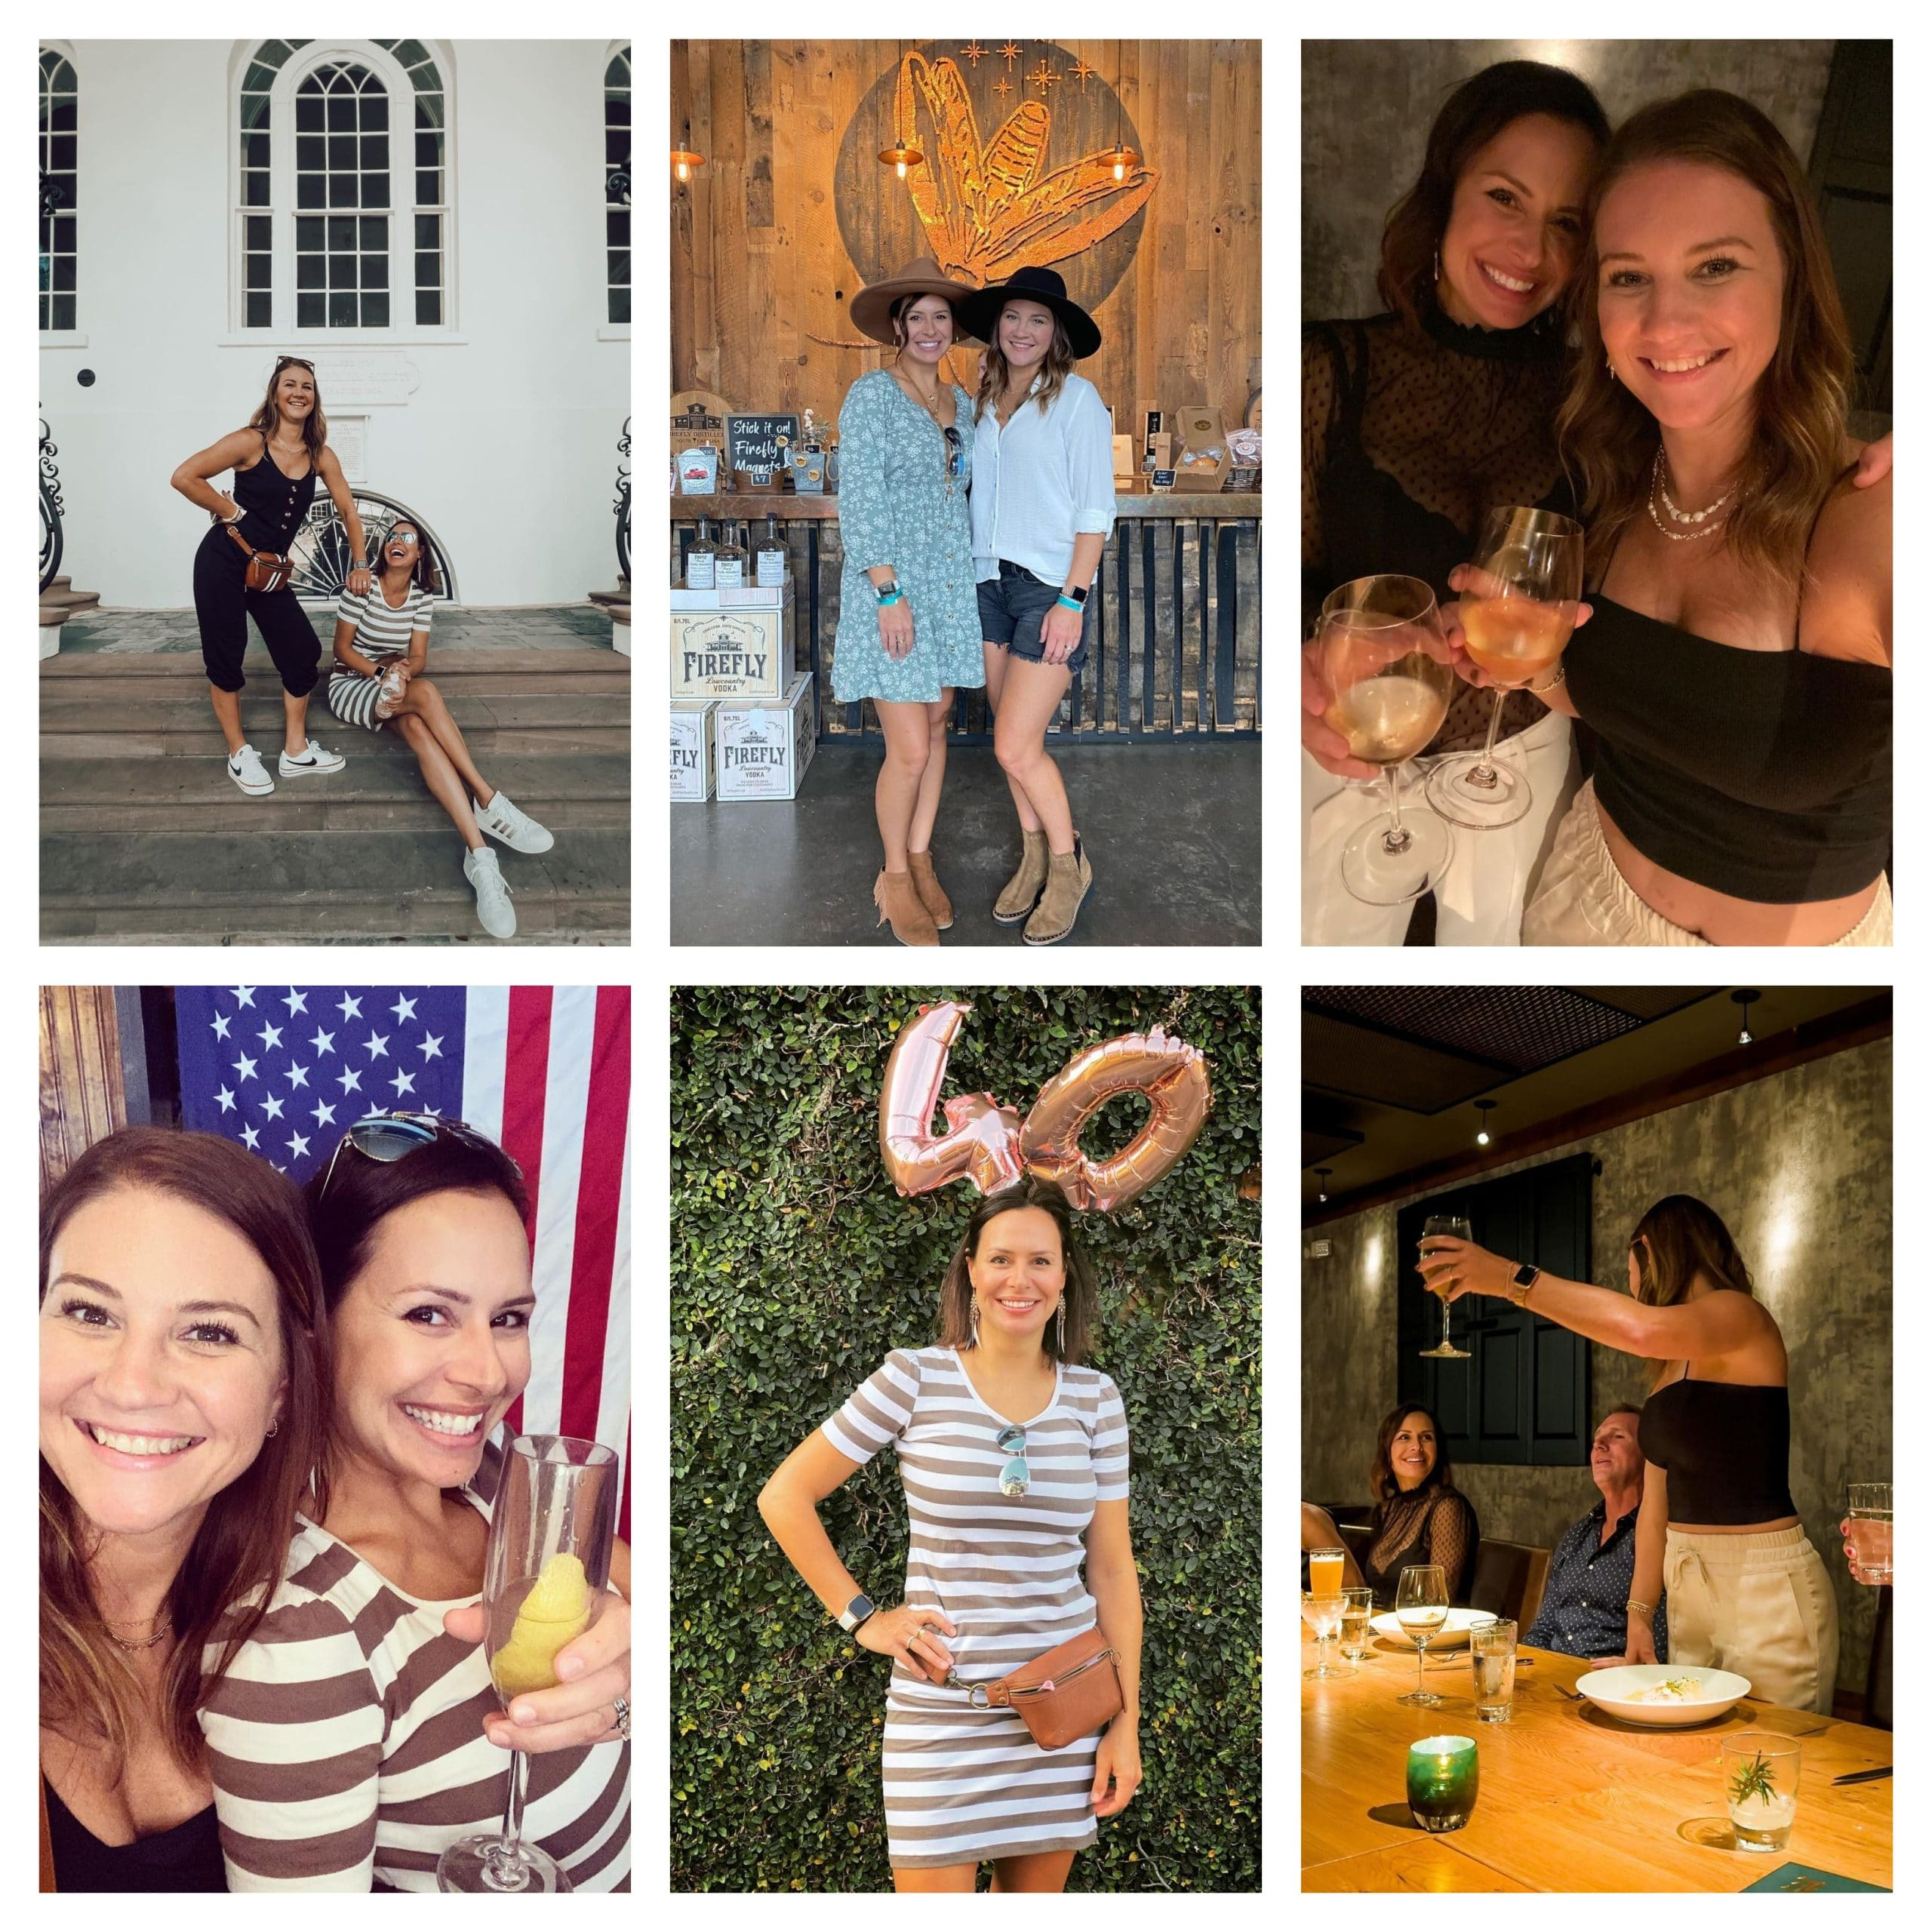 OutDaughtered Danielle Busby